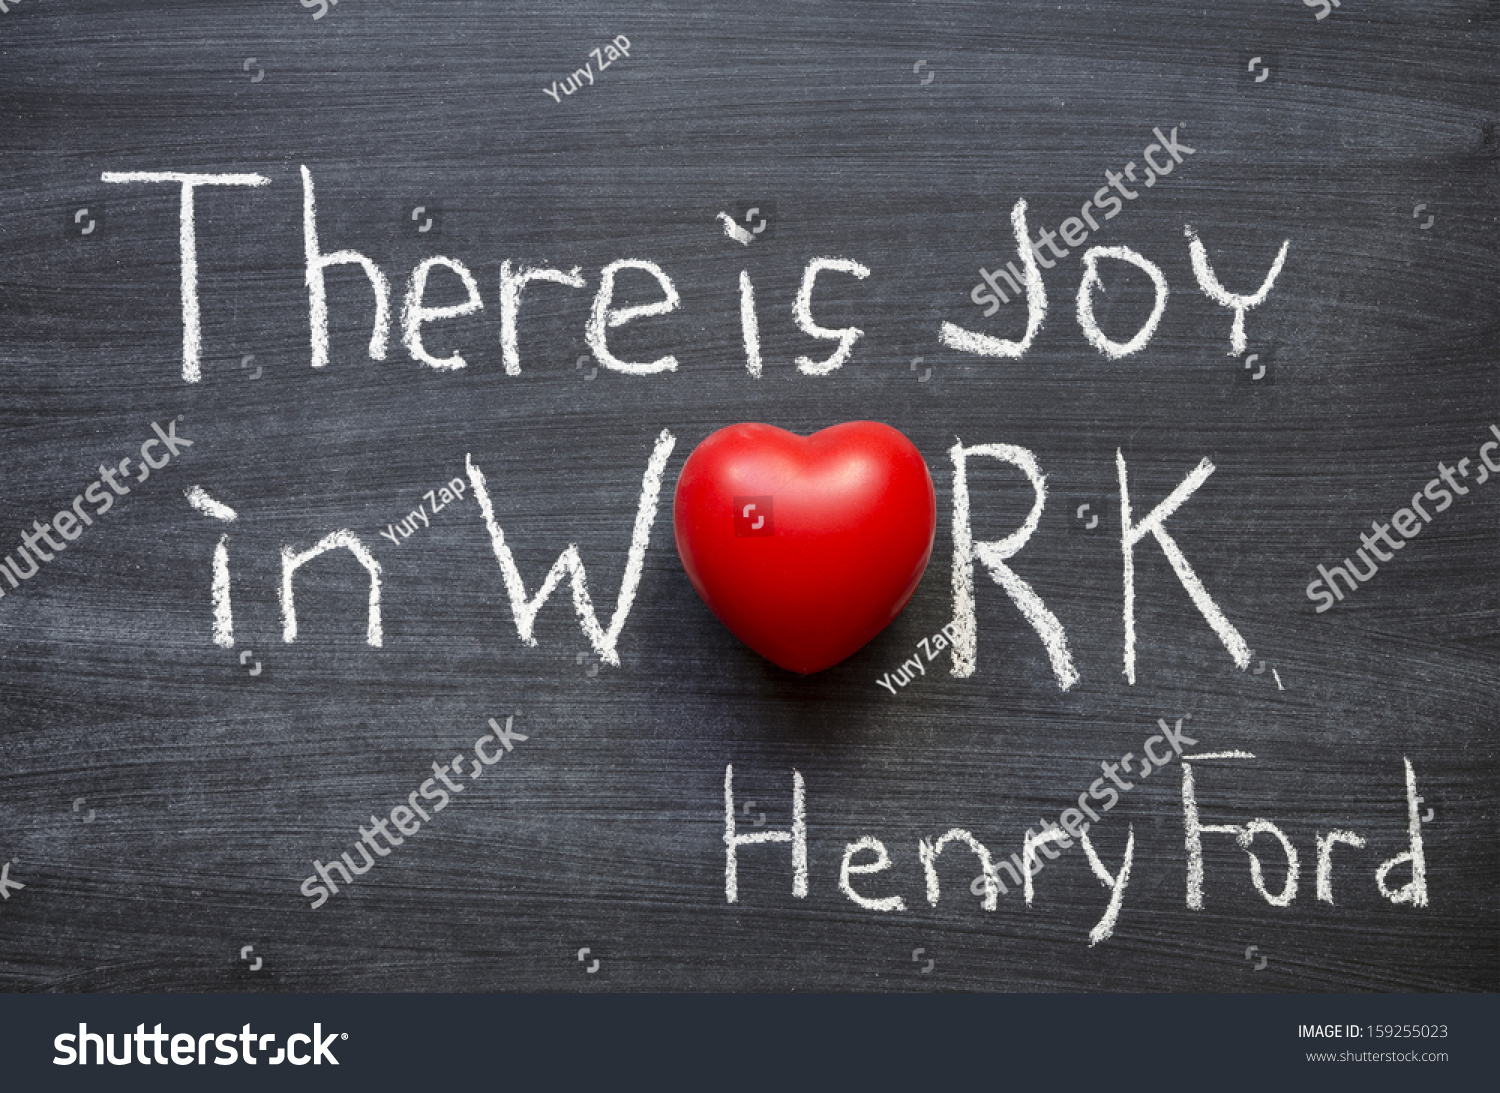 Ford Quote Excerpt Famous Henry Ford Quote There Stock Photo 159255023